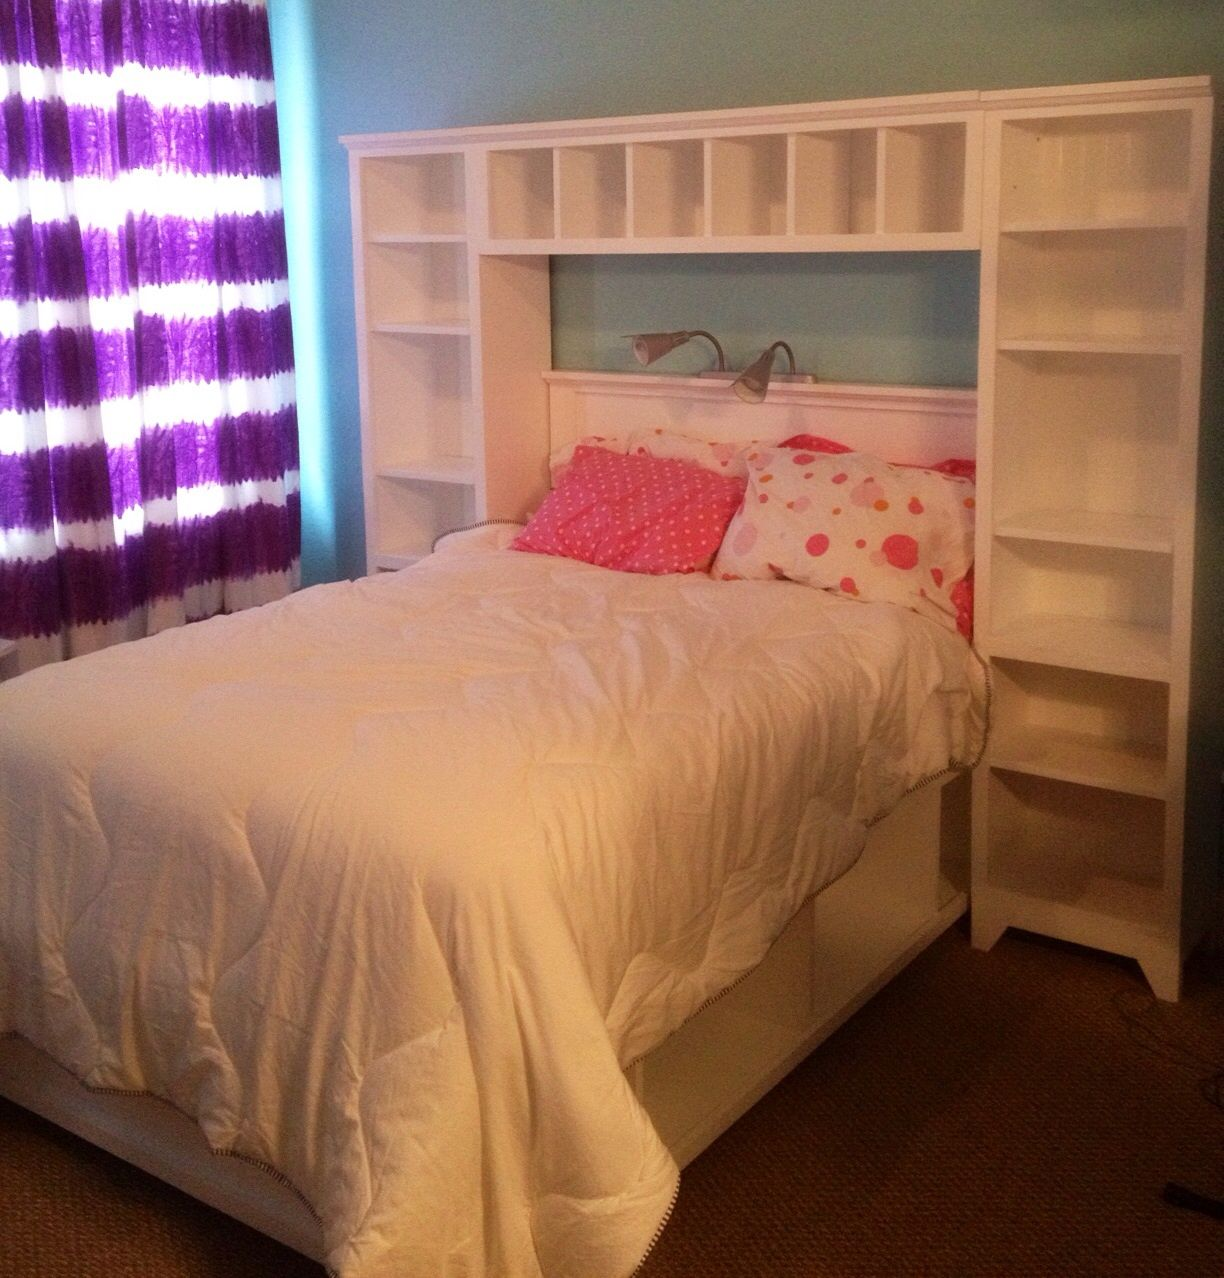 Best Complete Full Sized Hailey Bed And Storage System Do It 400 x 300